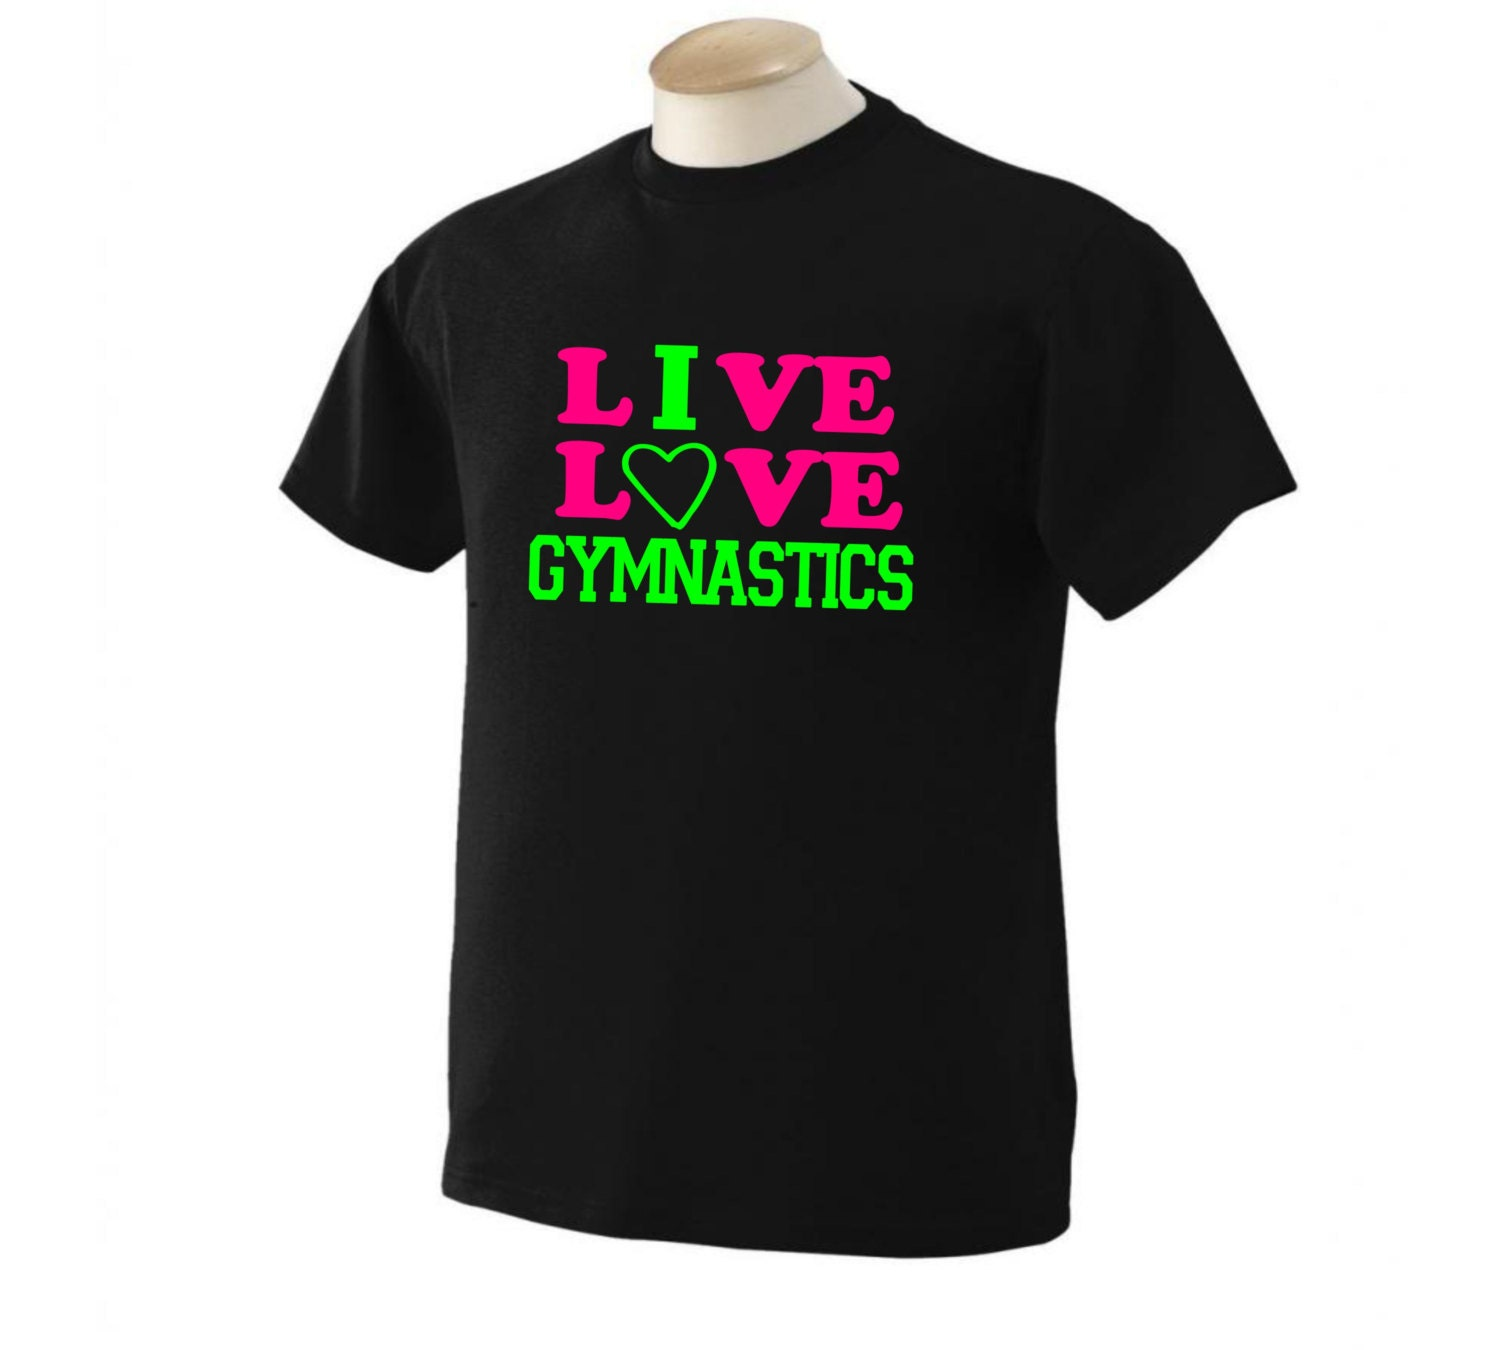 Live Love Gymnastics T Shirt Neon Design Sports Shirt By